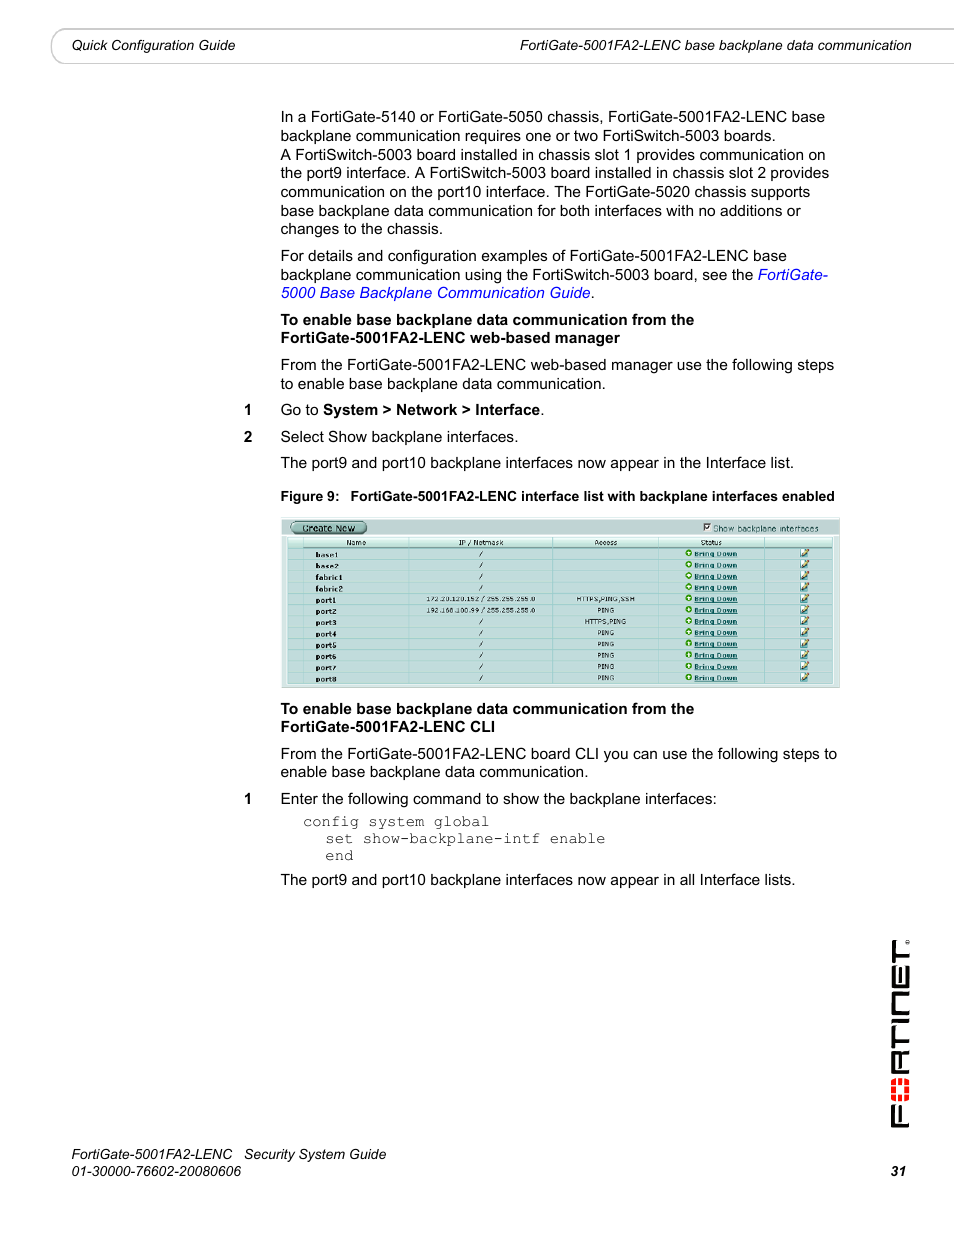 Fortinet FortiGate 5001FA2-LENC User Manual | Page 31 / 34